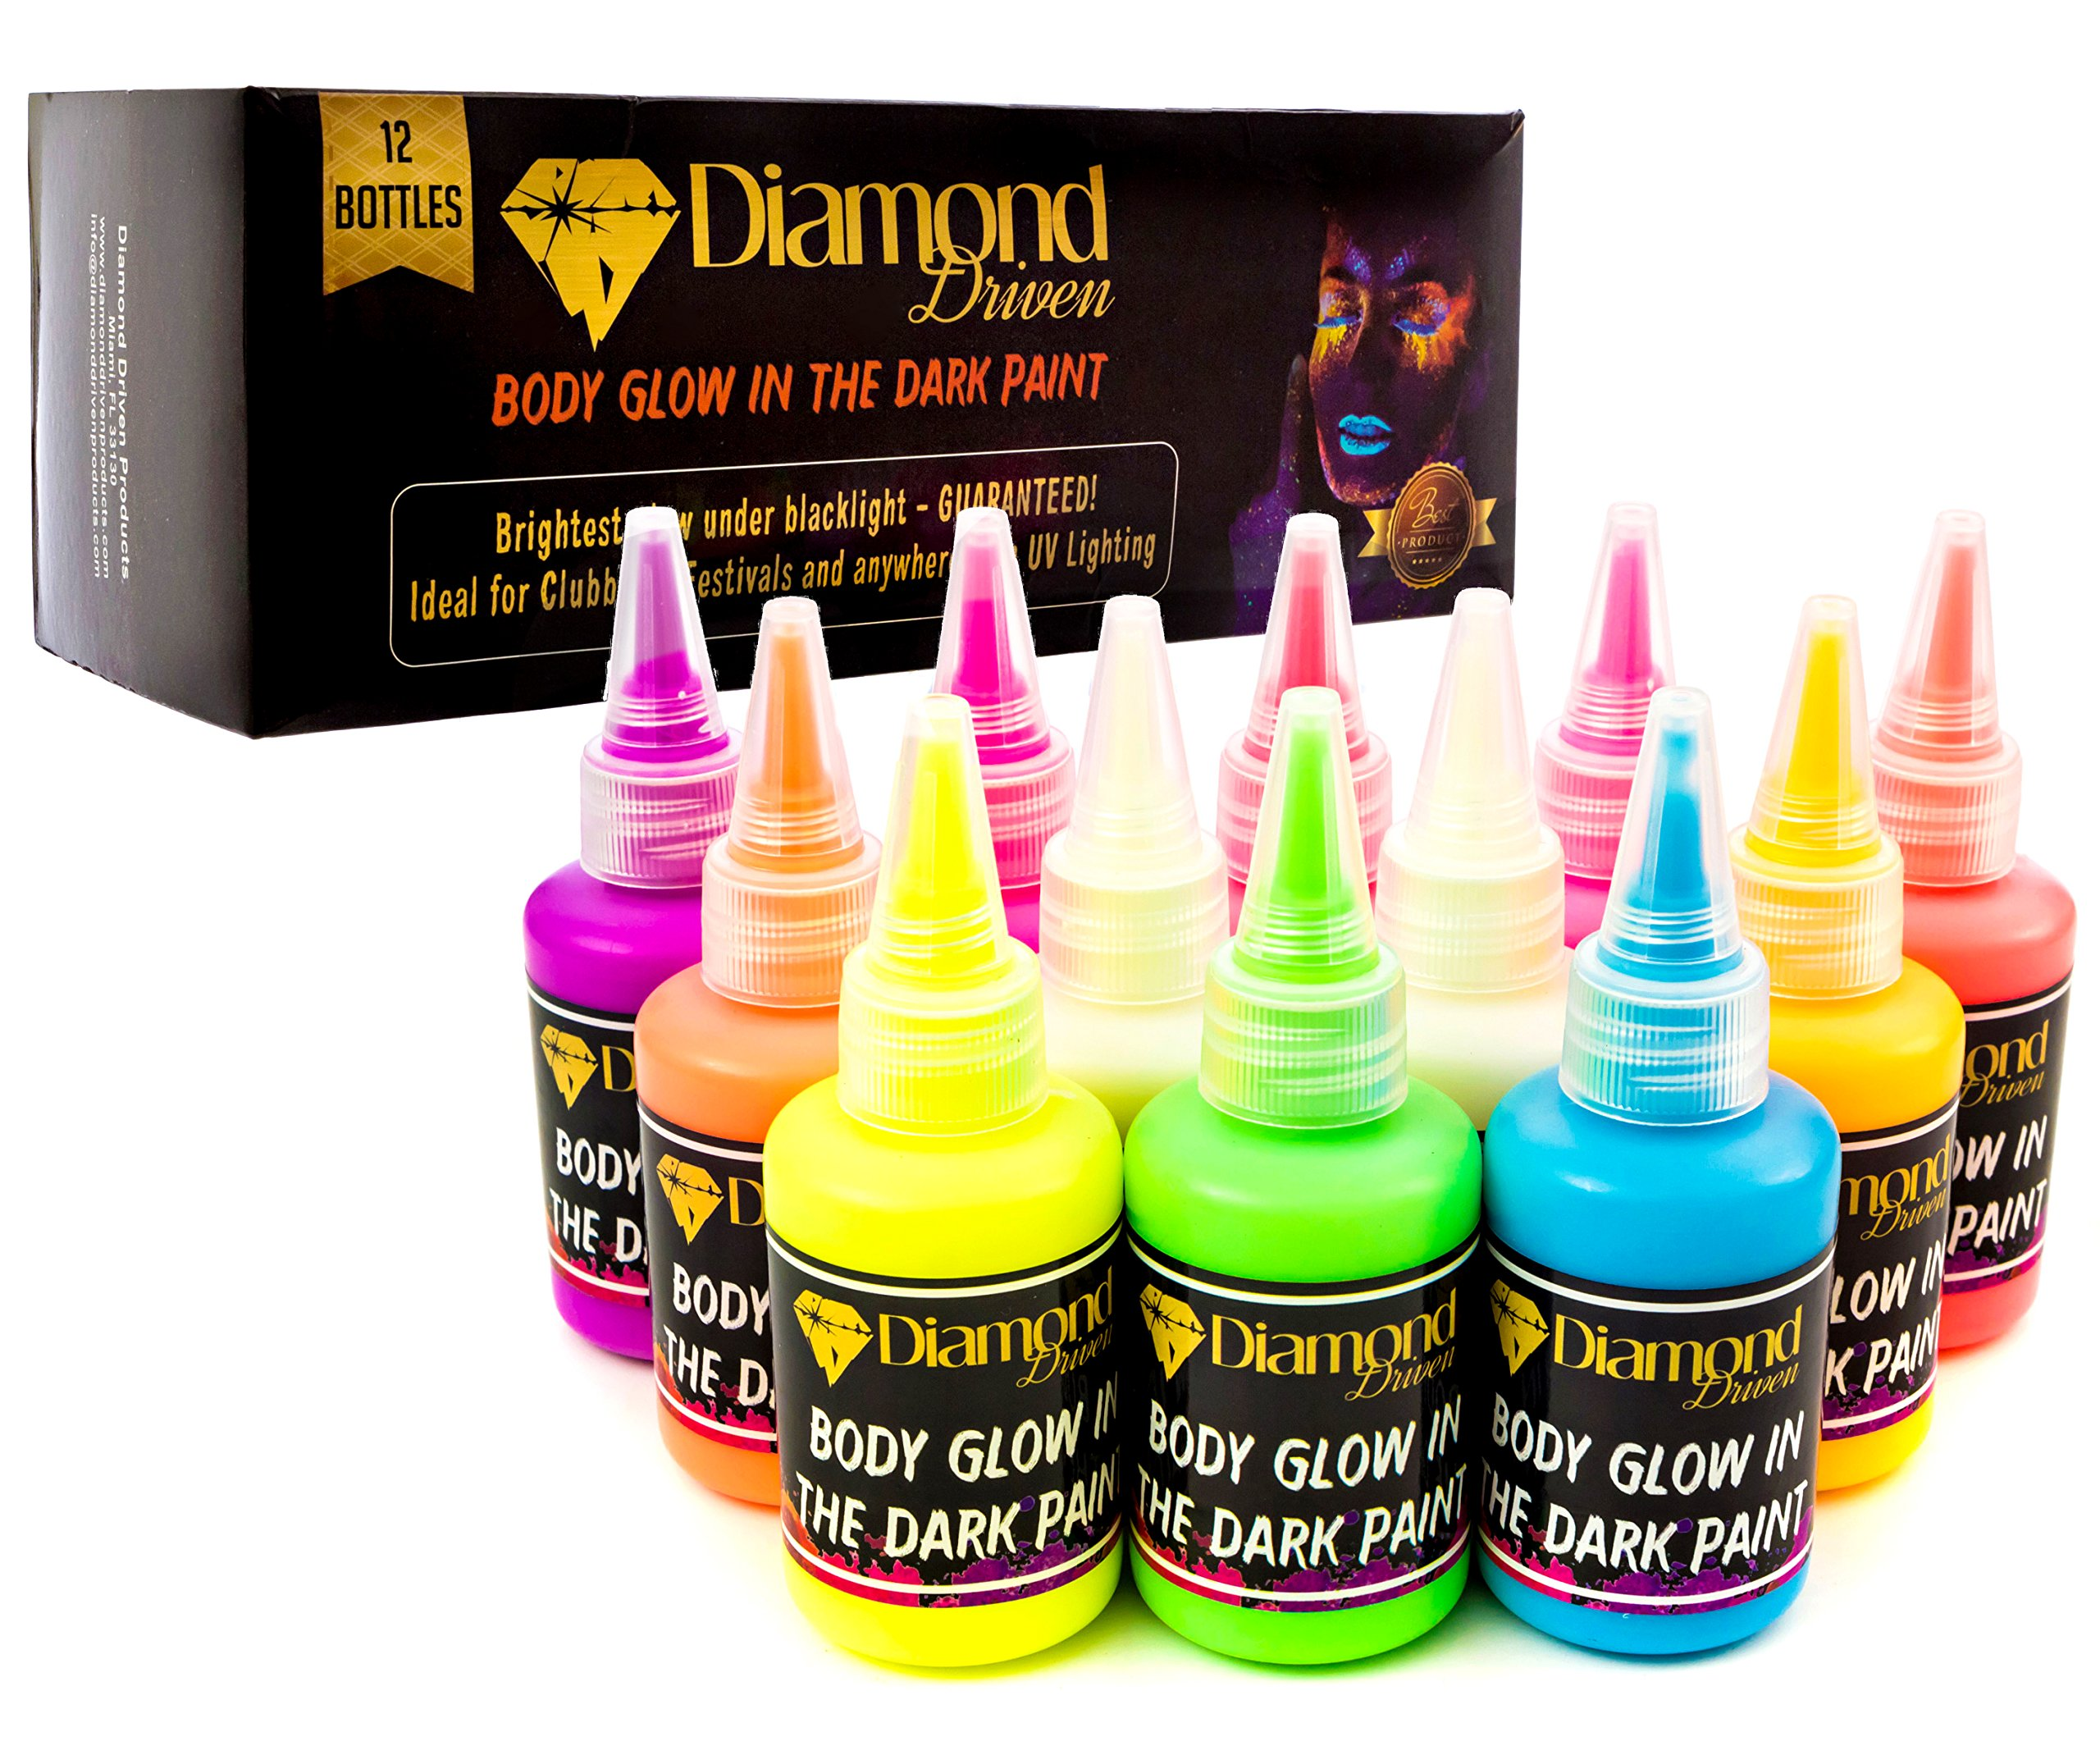 Diamond Driven Body Glow in Dark Paint Blacklight Face and Body Paint UV, Acrylic Glow Paint 60ml 2.02oz - Set of 12 Tubes - Neon Fluorescent by Diamond